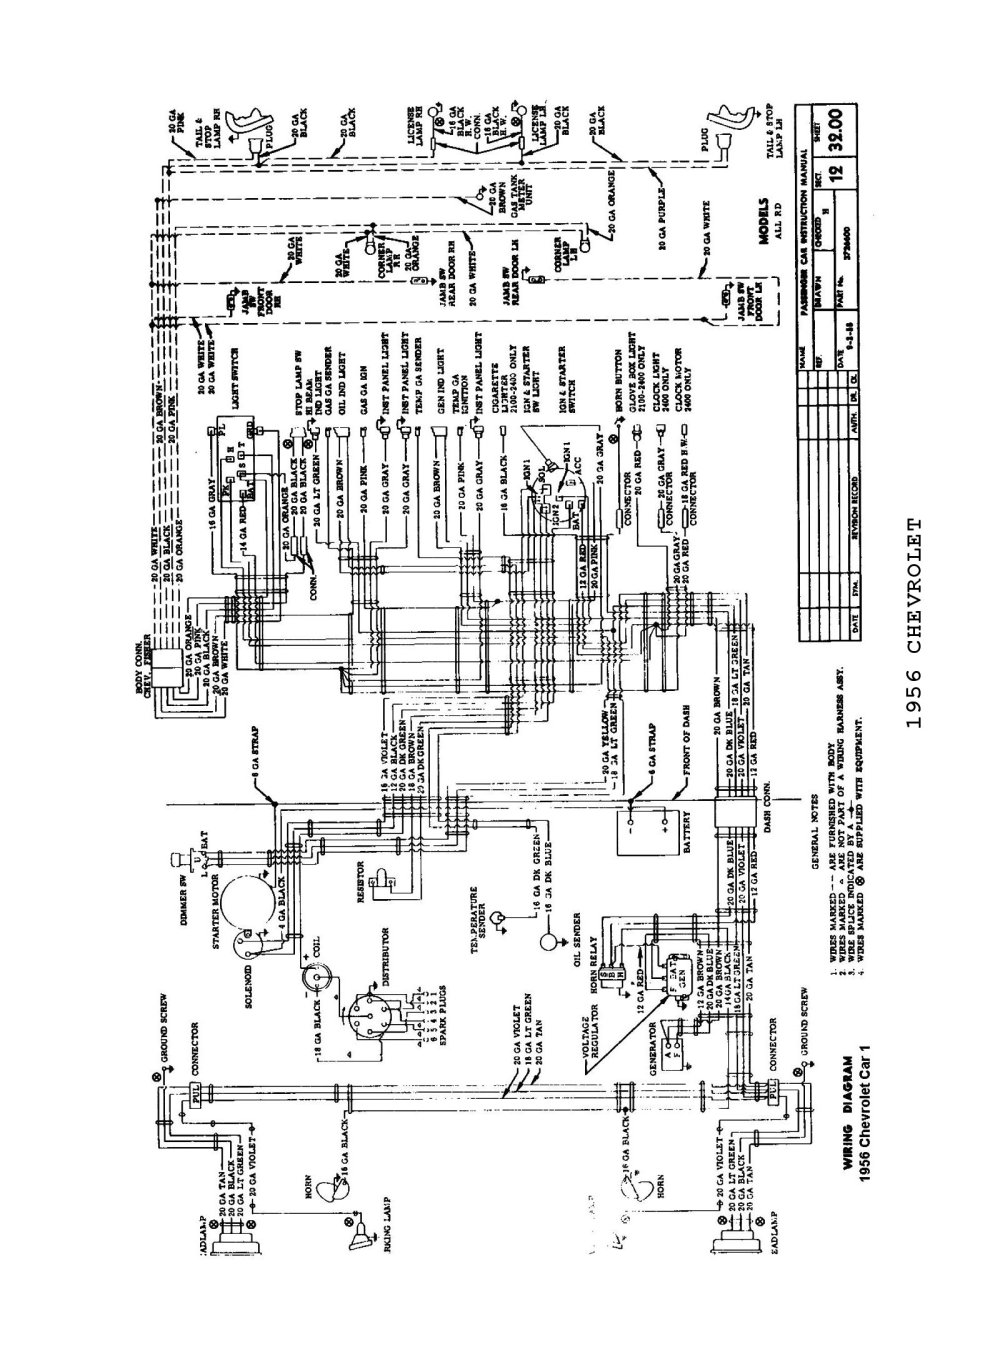 medium resolution of 1965 chevrolet pickup wiring diagram